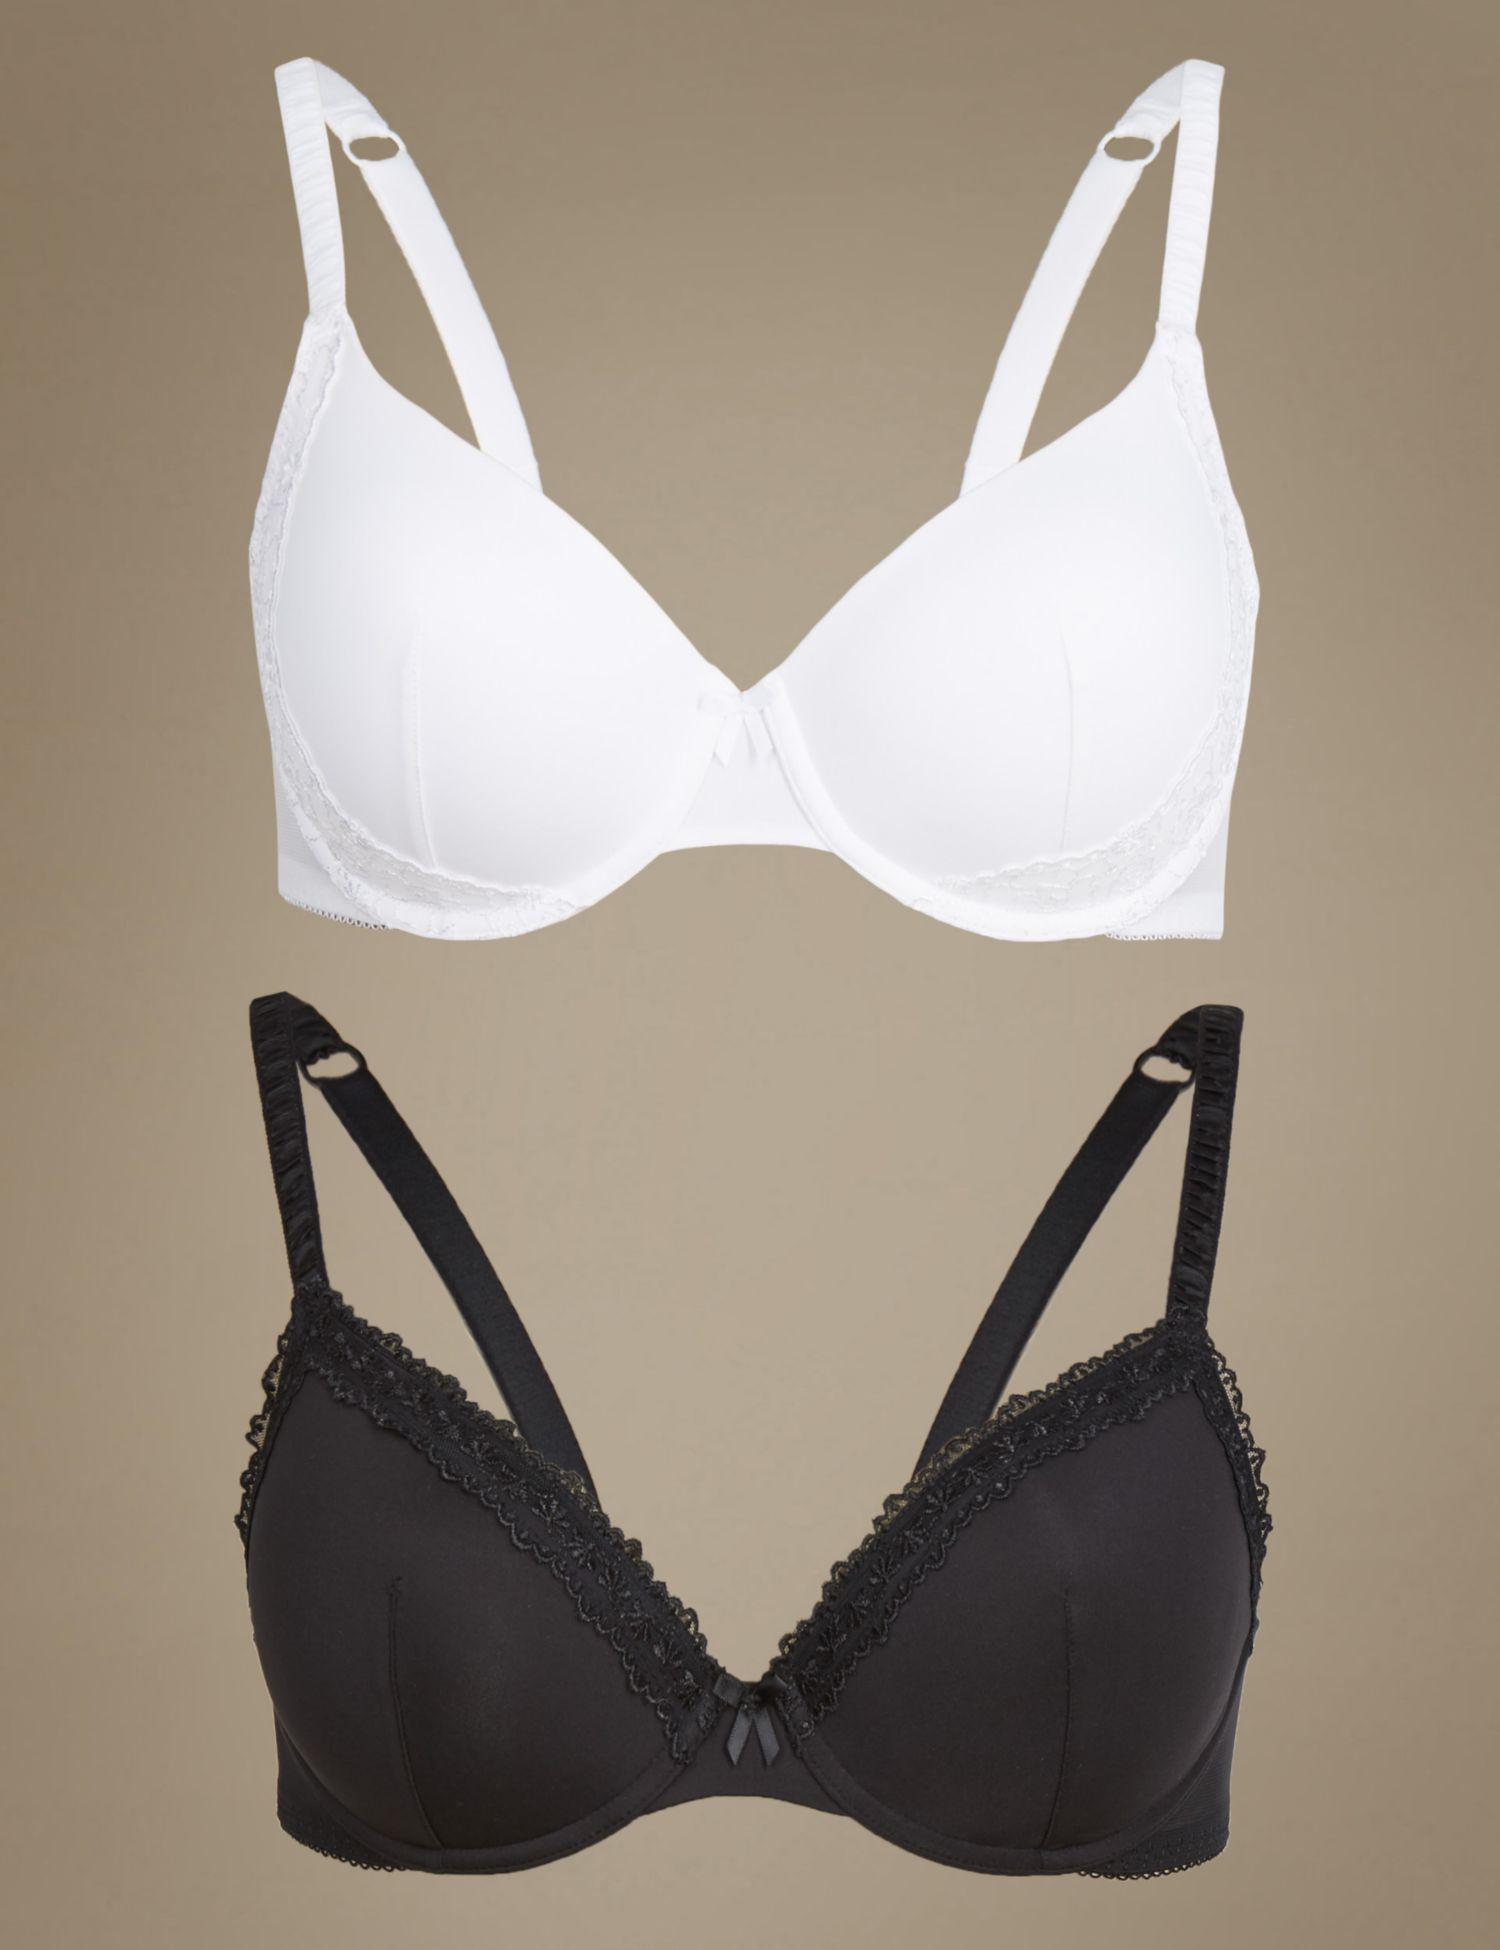 594e2ee670f07 Marks & Spencer 2 Pack Embroidered Smoothing Full Cup Bras A-e - Lyst